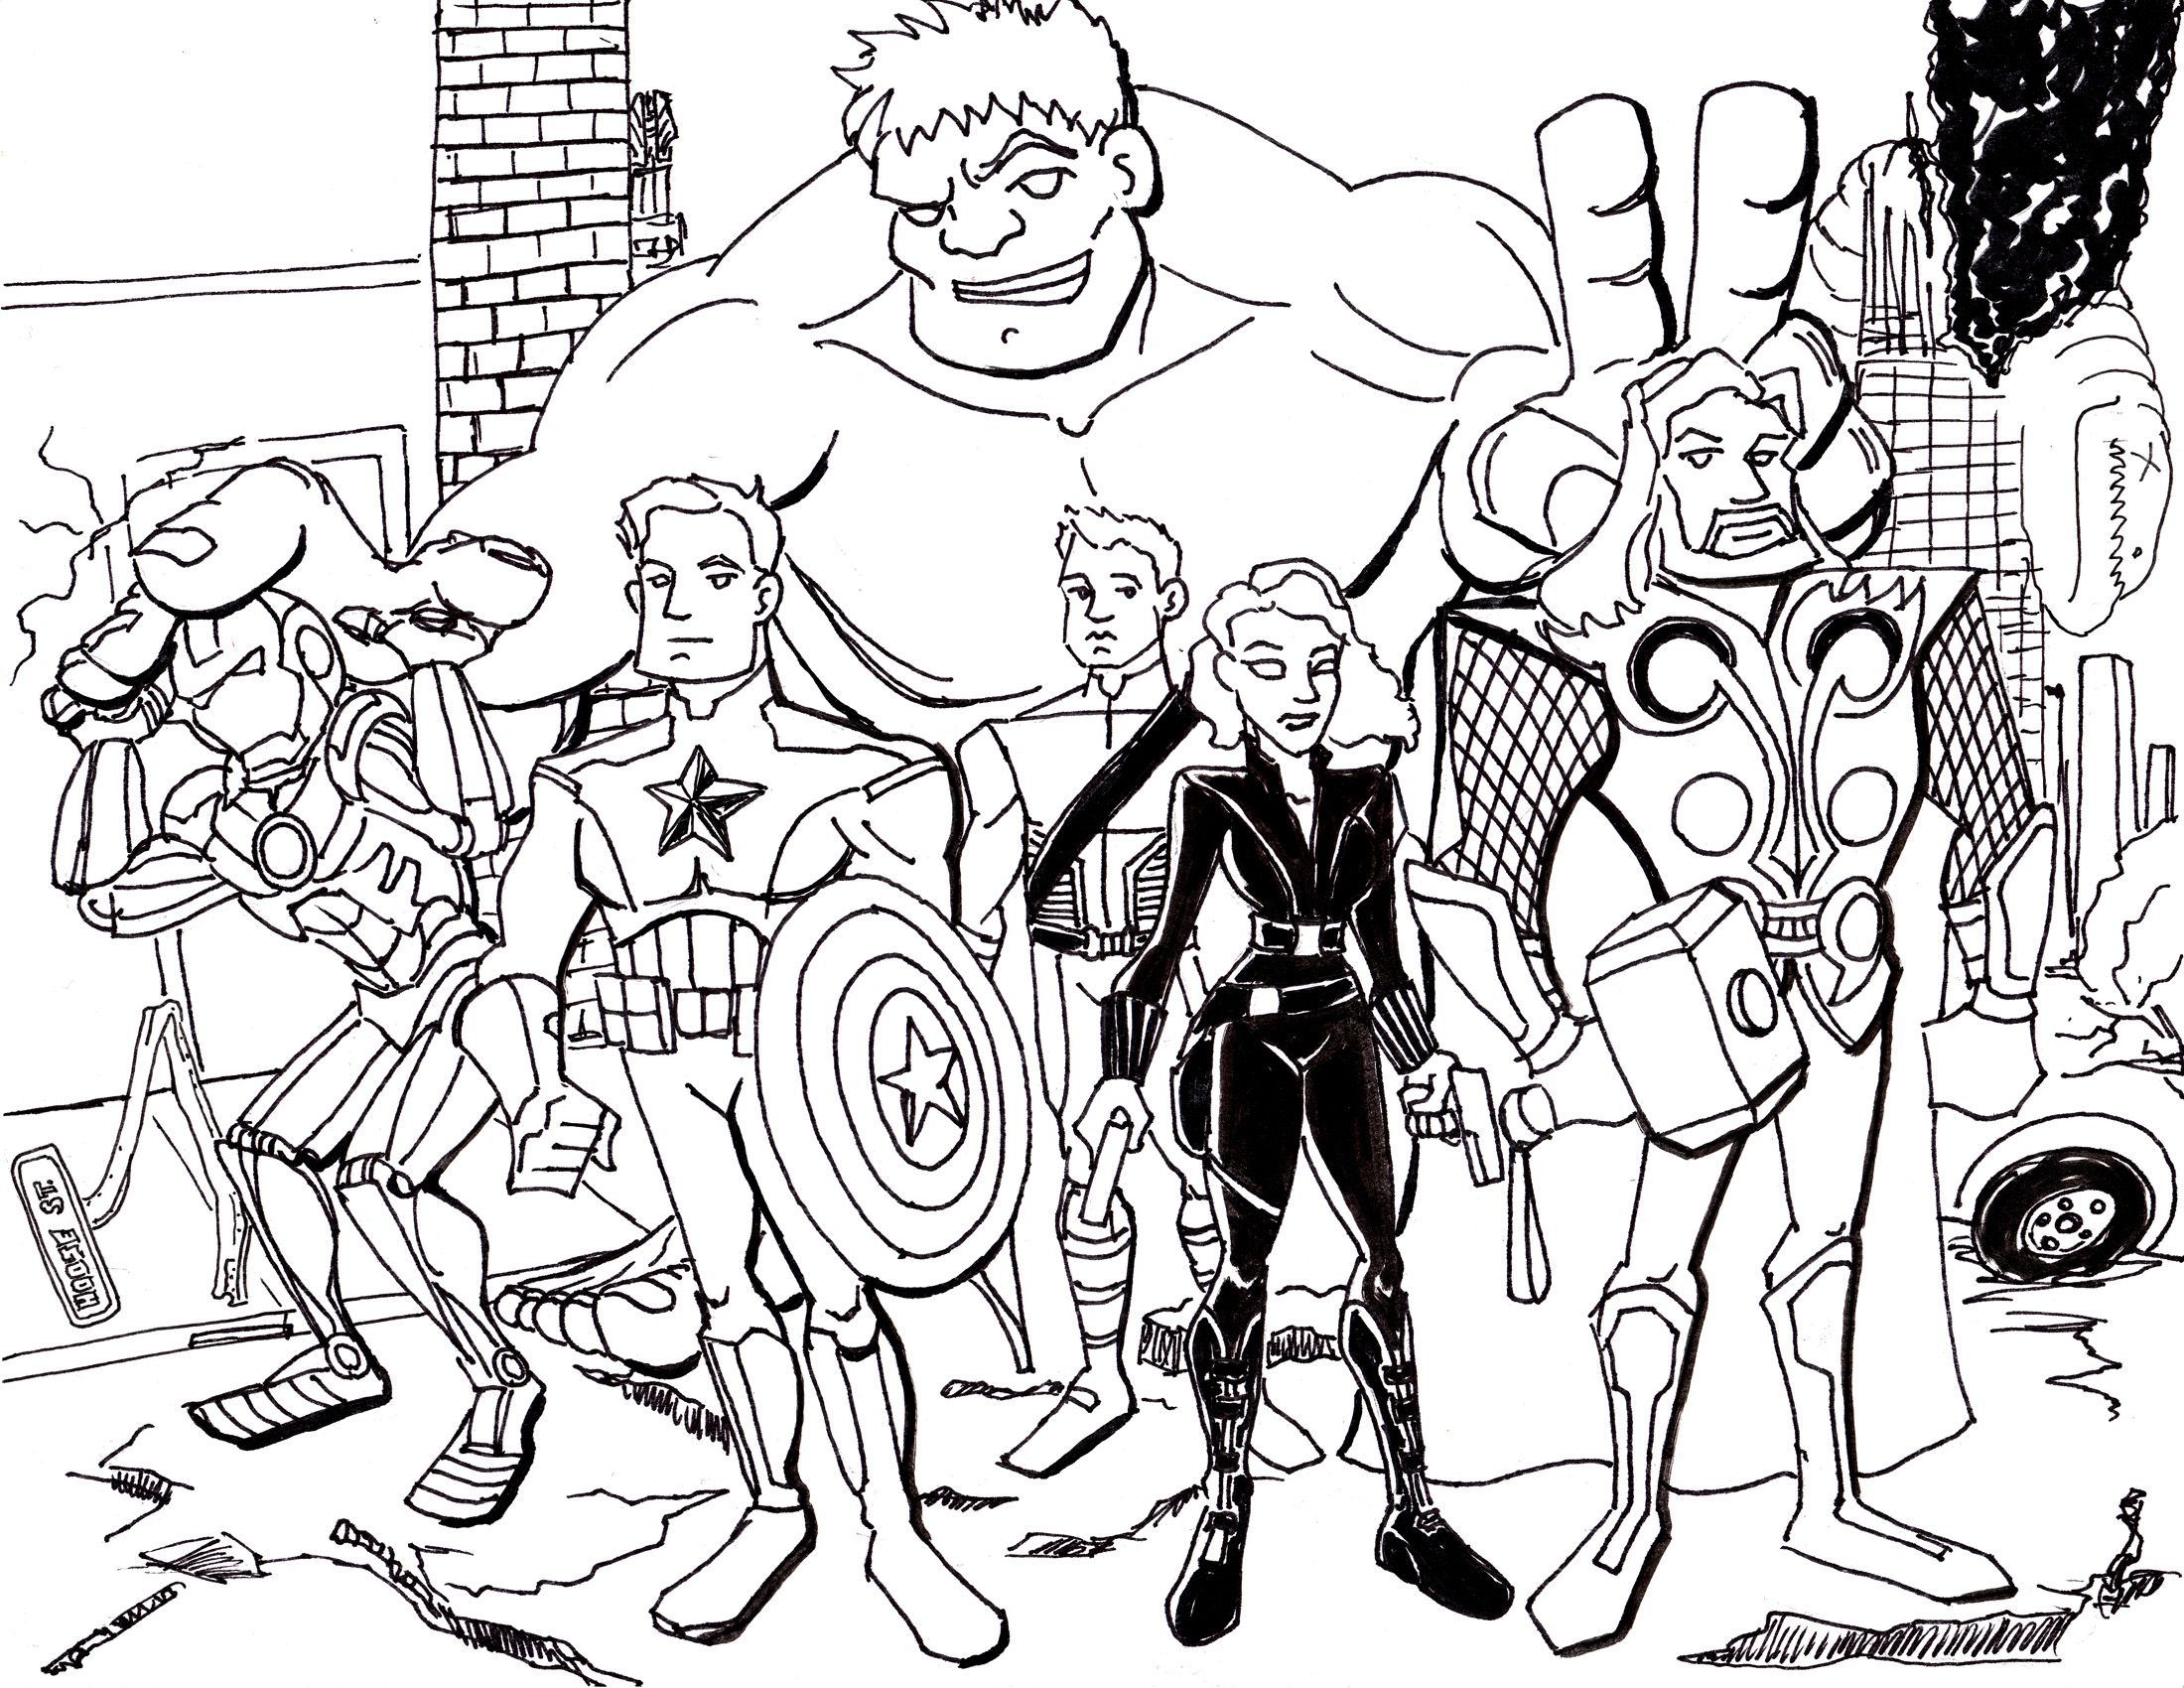 Avengers Avengers Coloring Avengers Coloring Pages Superhero Coloring Pages